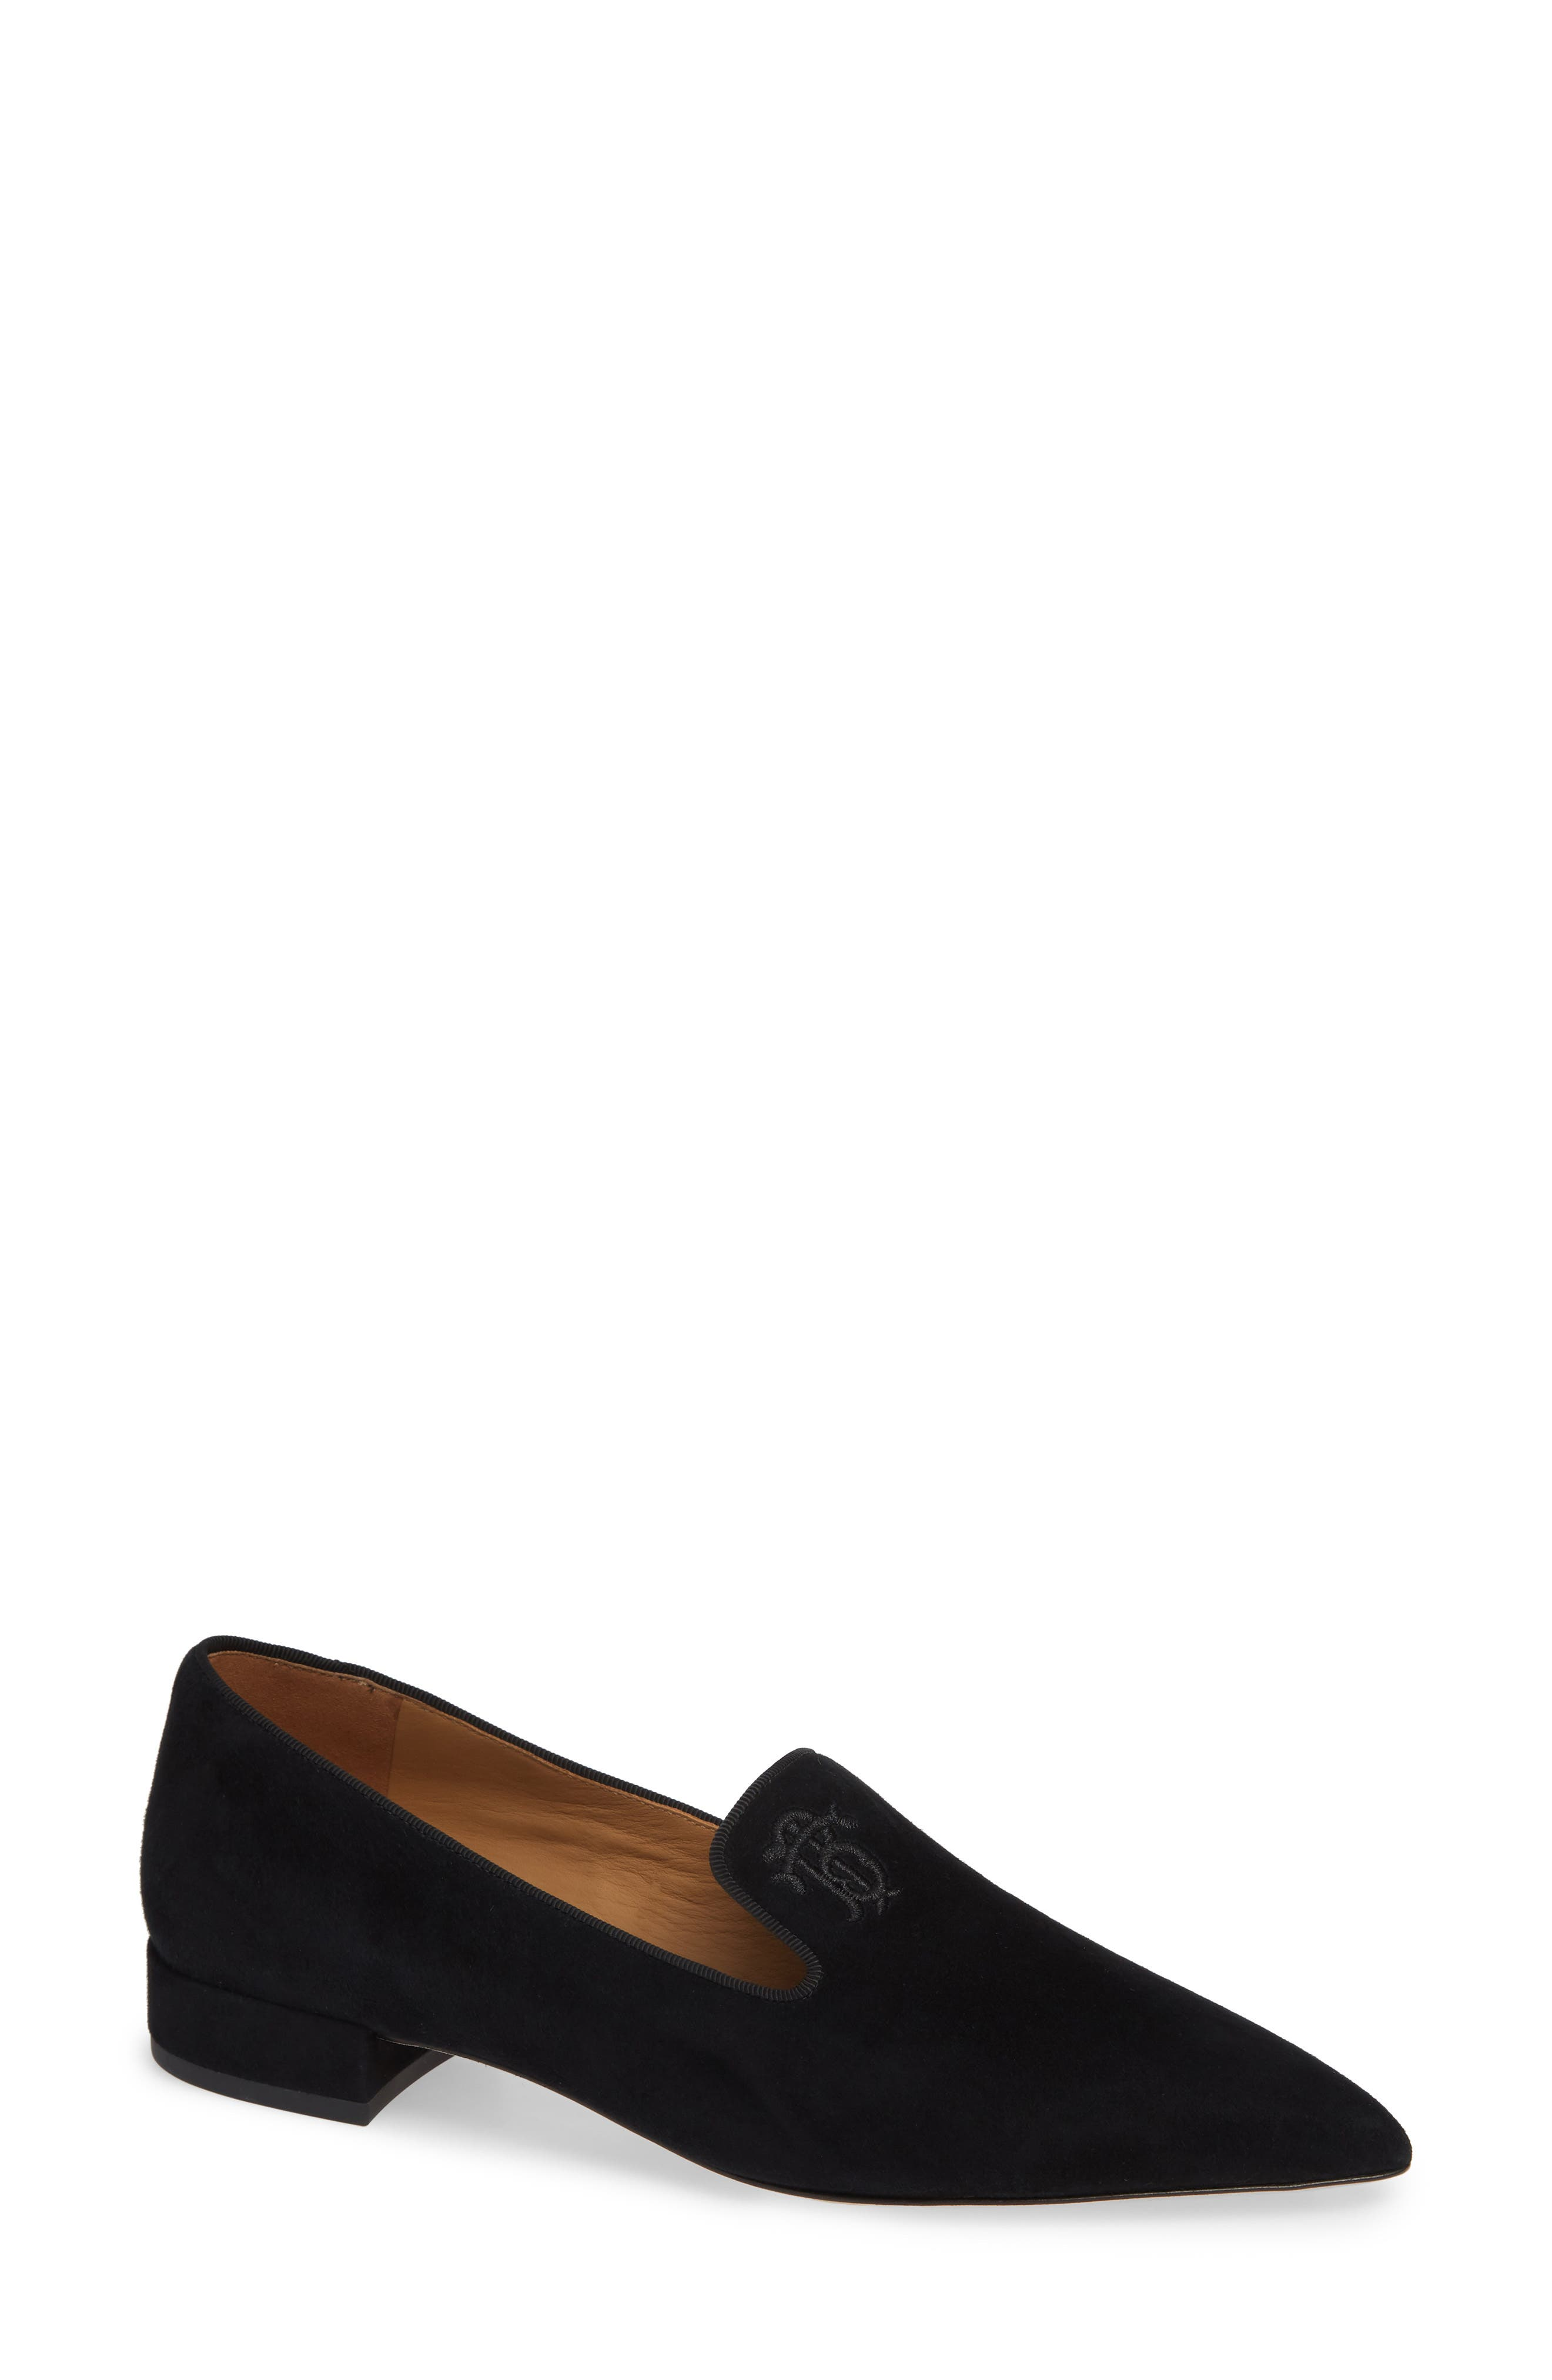 Tory Burch Pascal Pointy Toe Loafer, Black